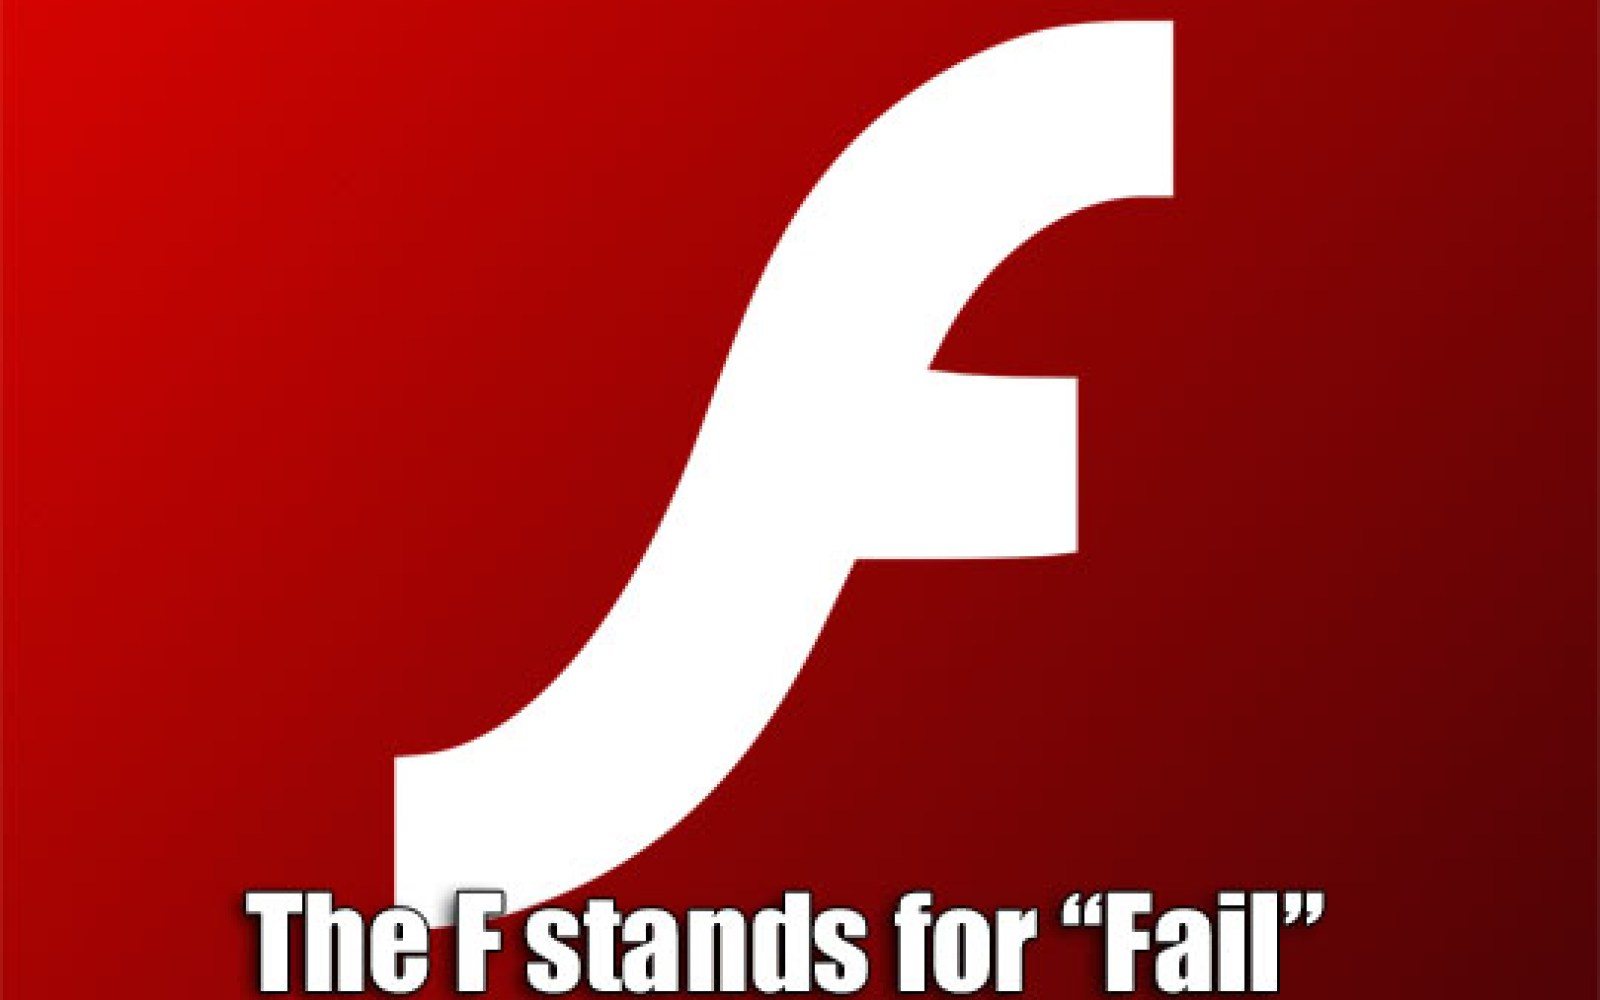 Apple blocks all outdated versions of Adobe Flash in Safari due to vulnerabilities